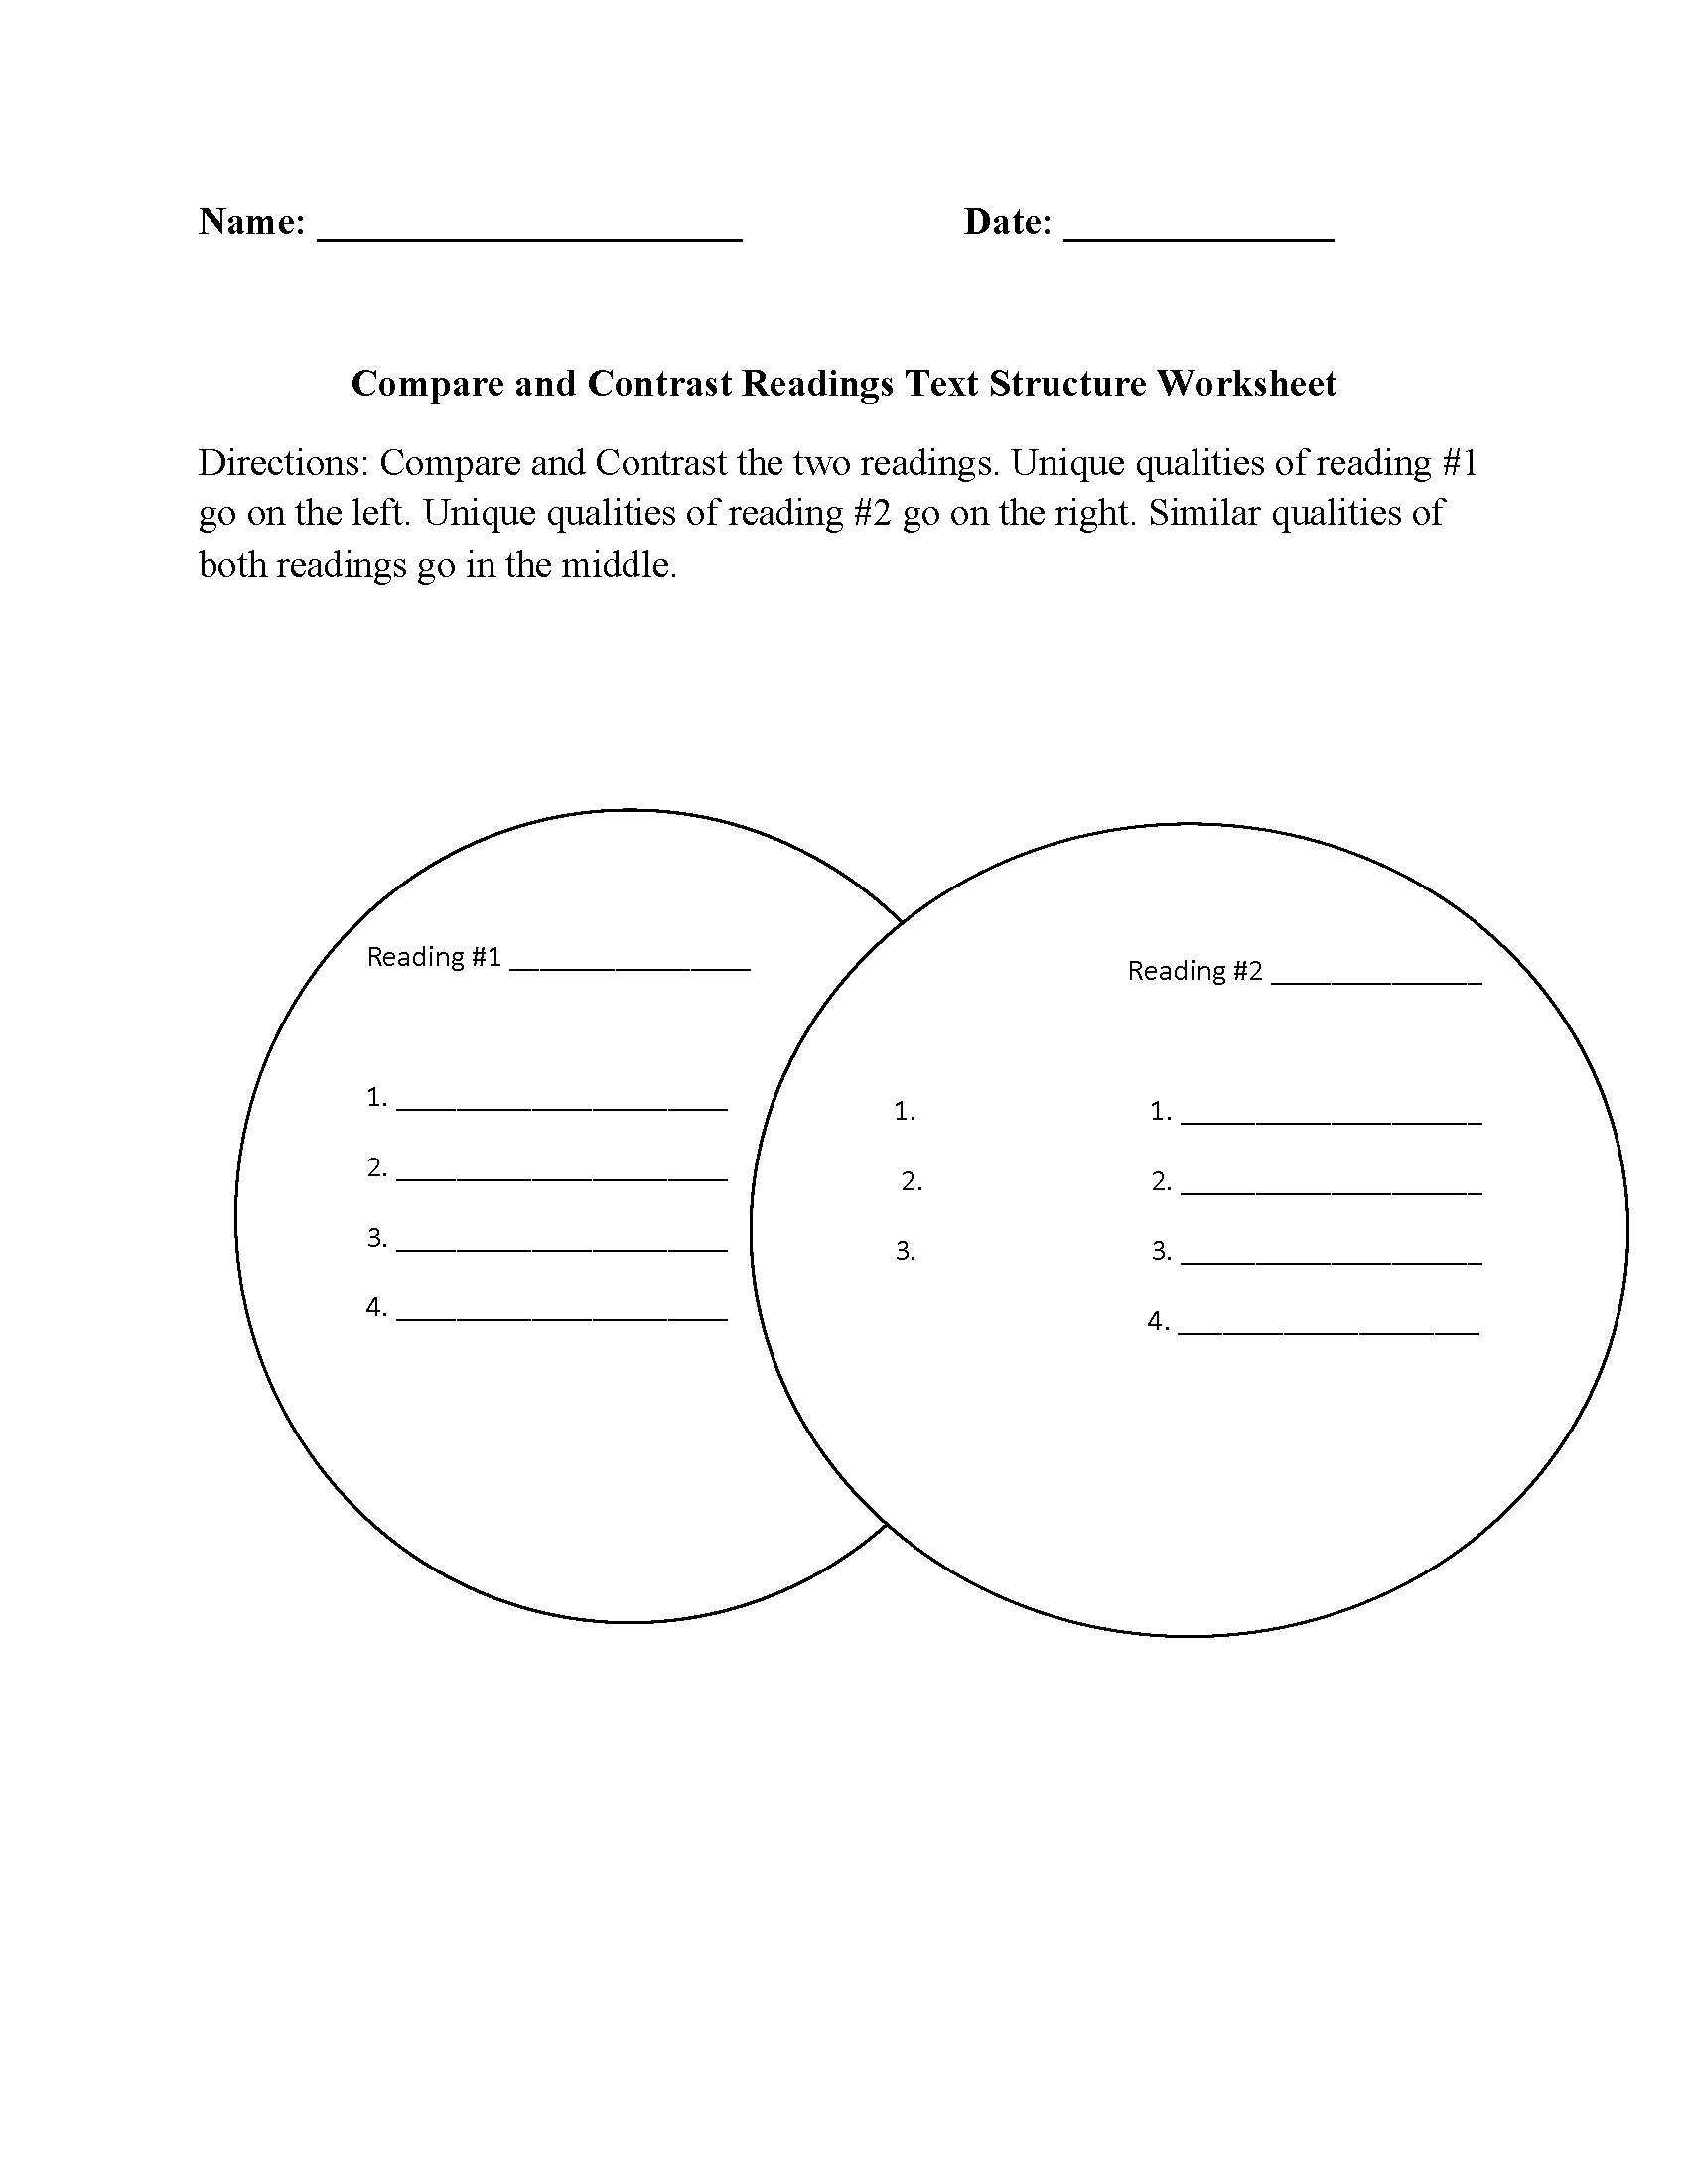 Worksheets Compare And Contrast Reading Worksheets compare and contrast readings text structure worksheets worksheets